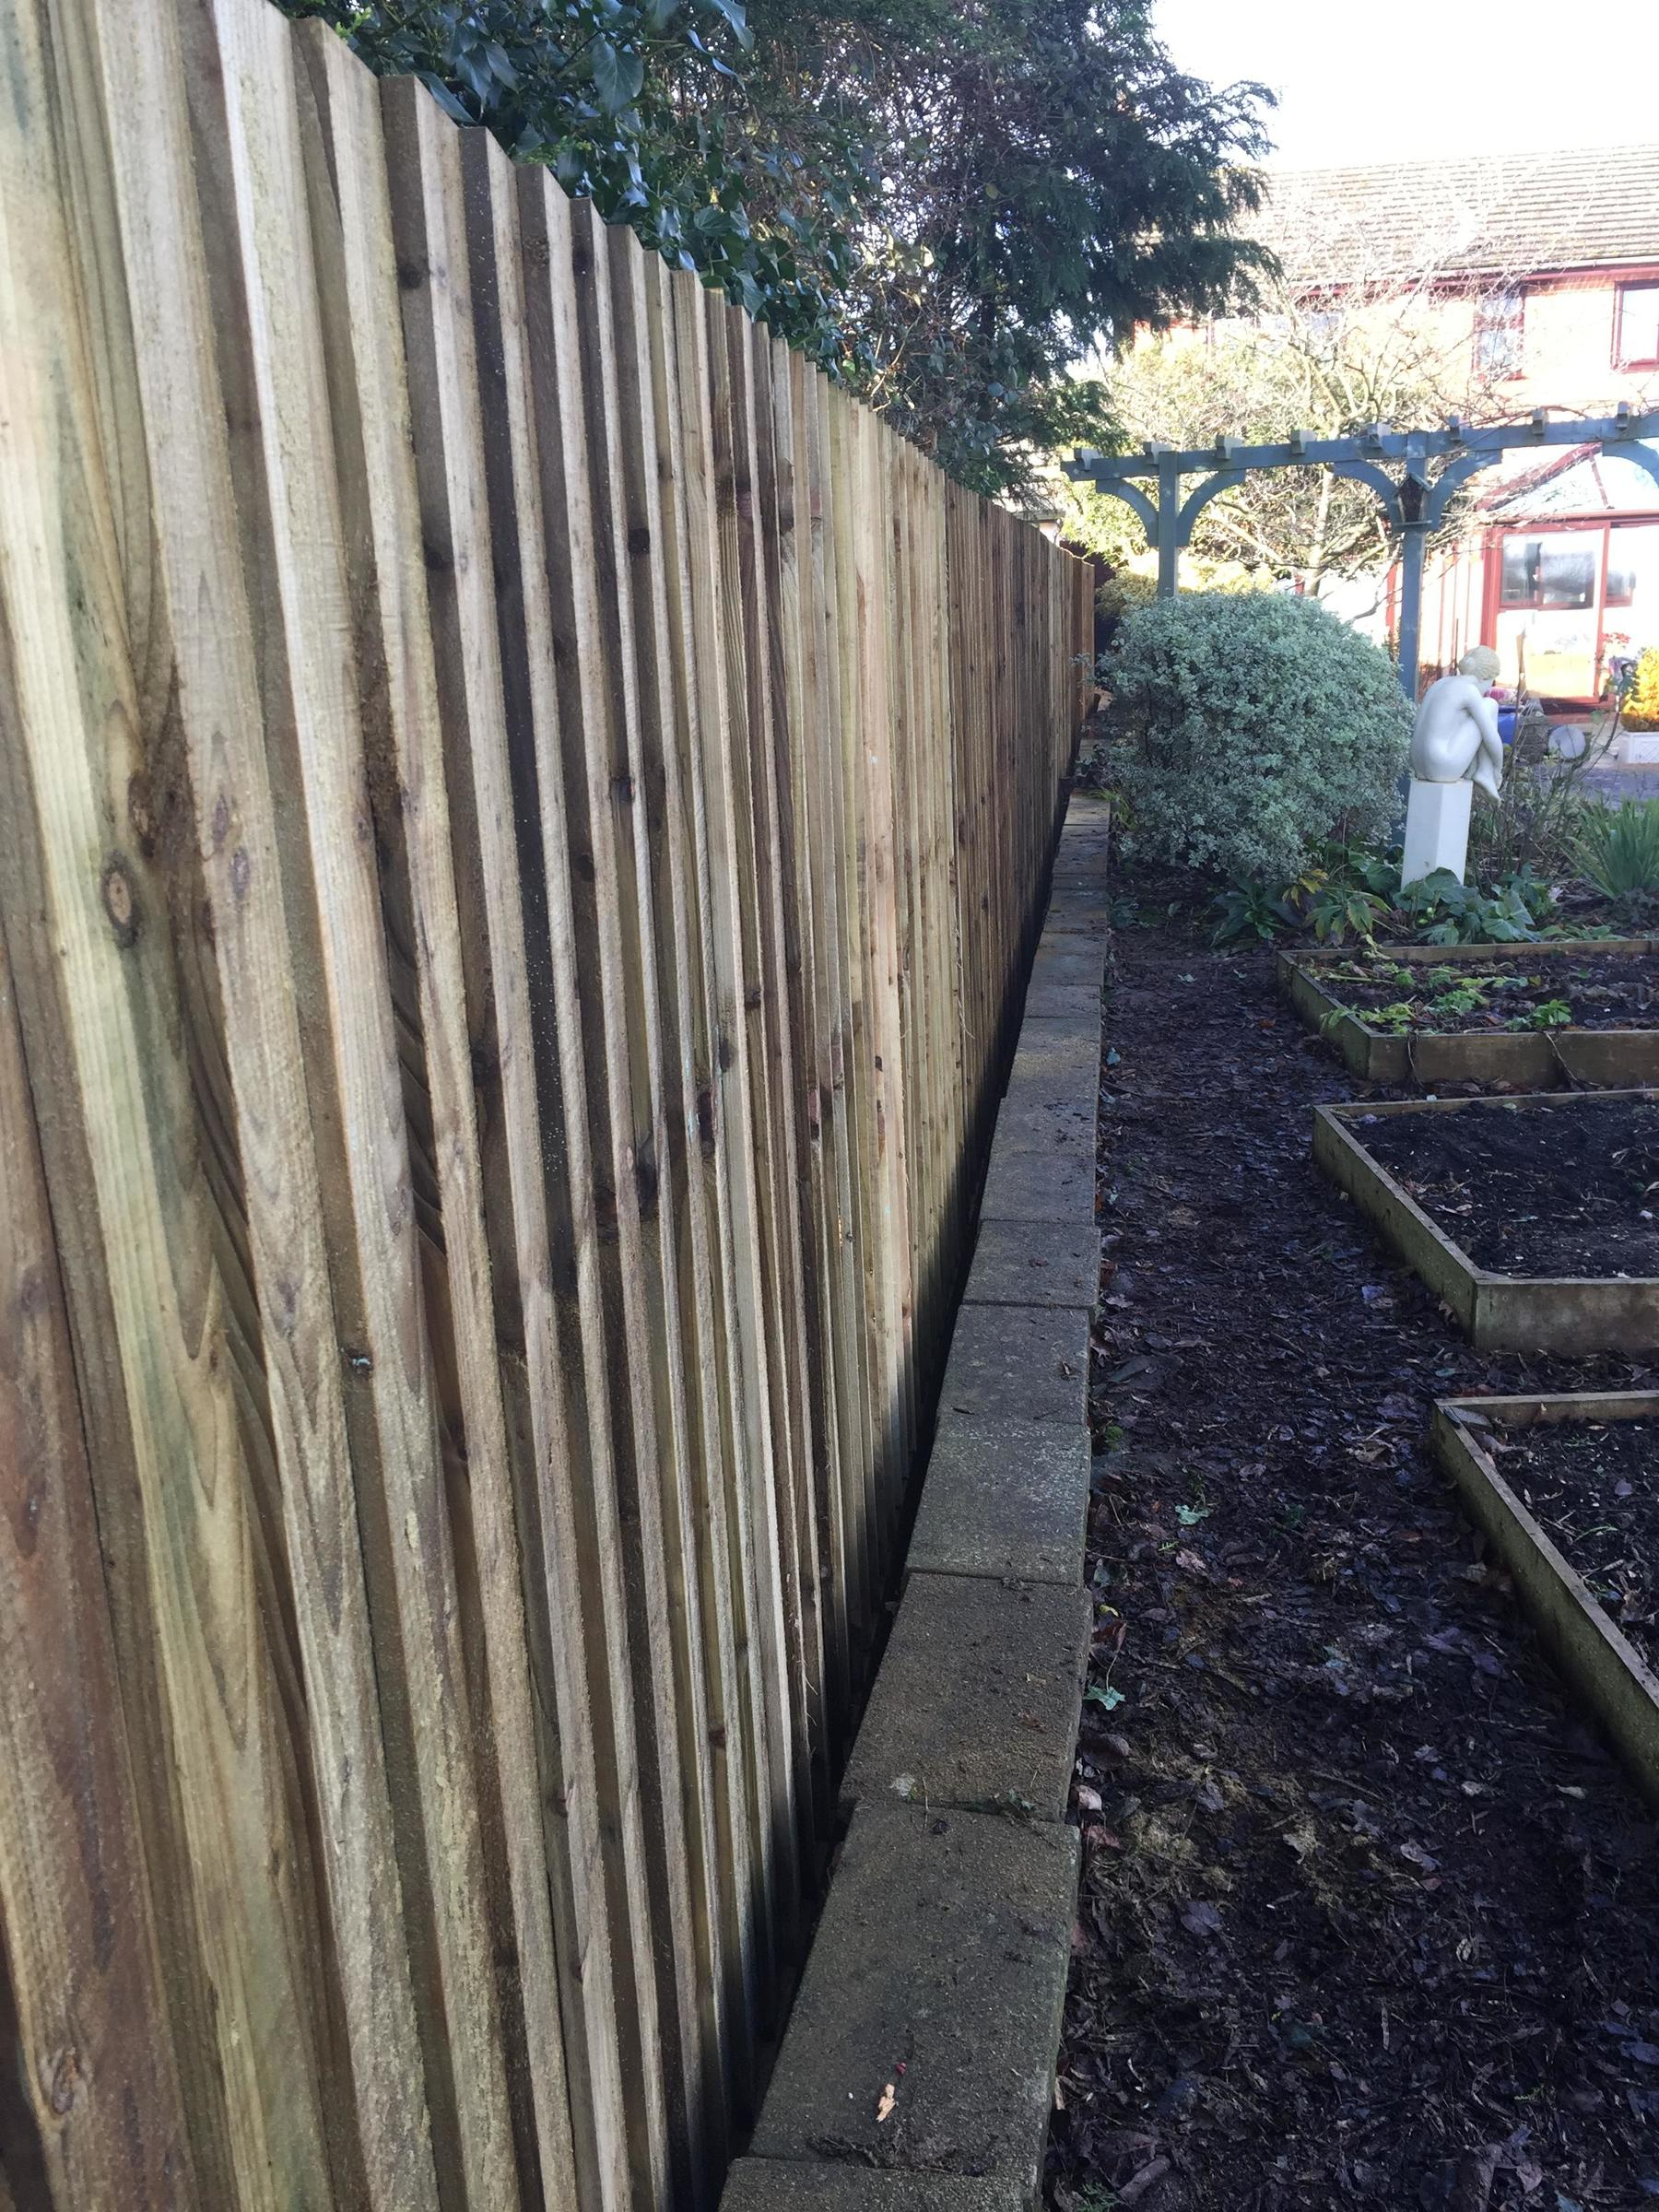 Why Wooden Fencing?